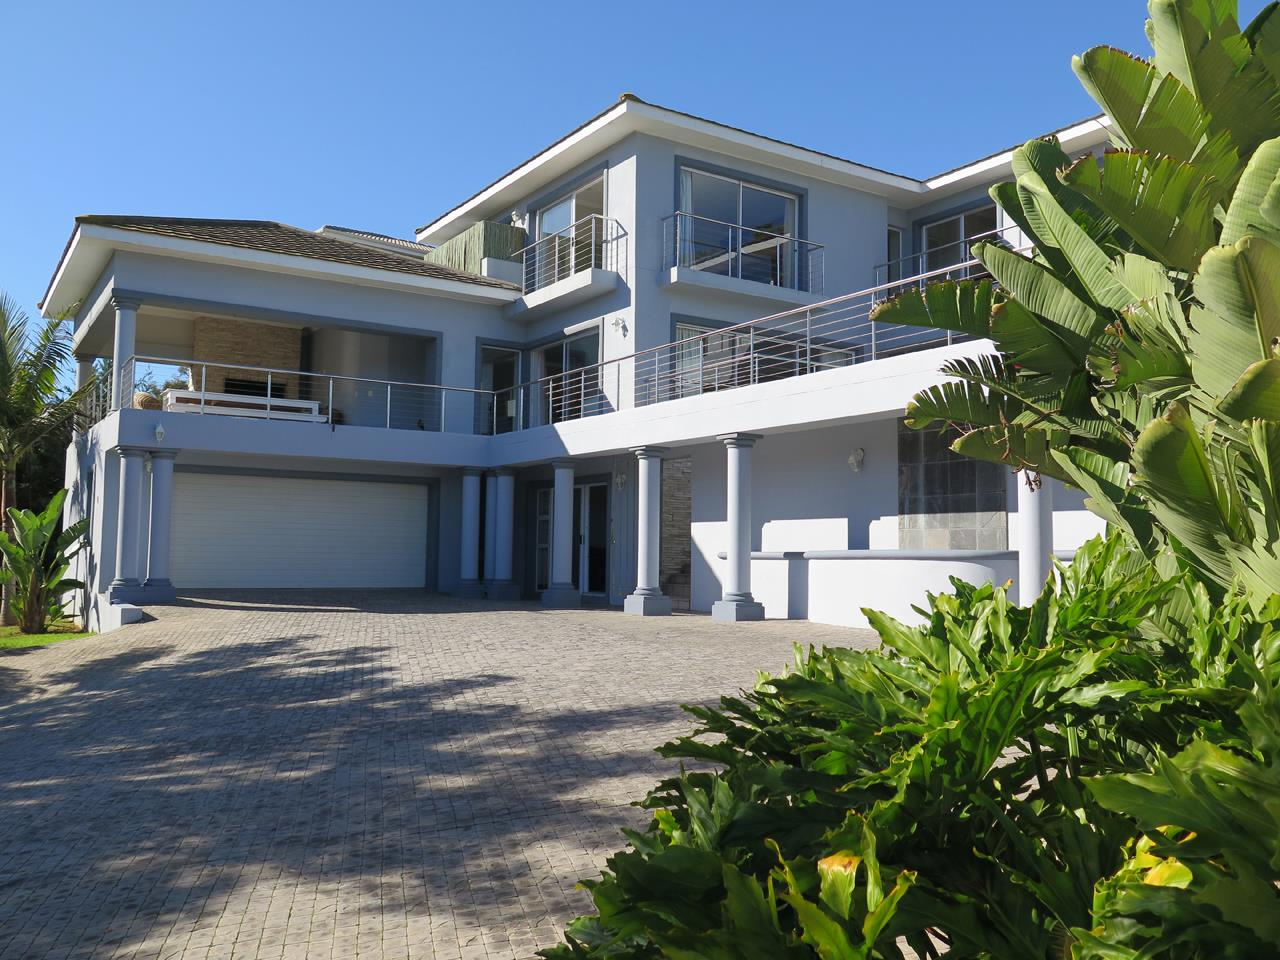 House for sale in Upper Robberg